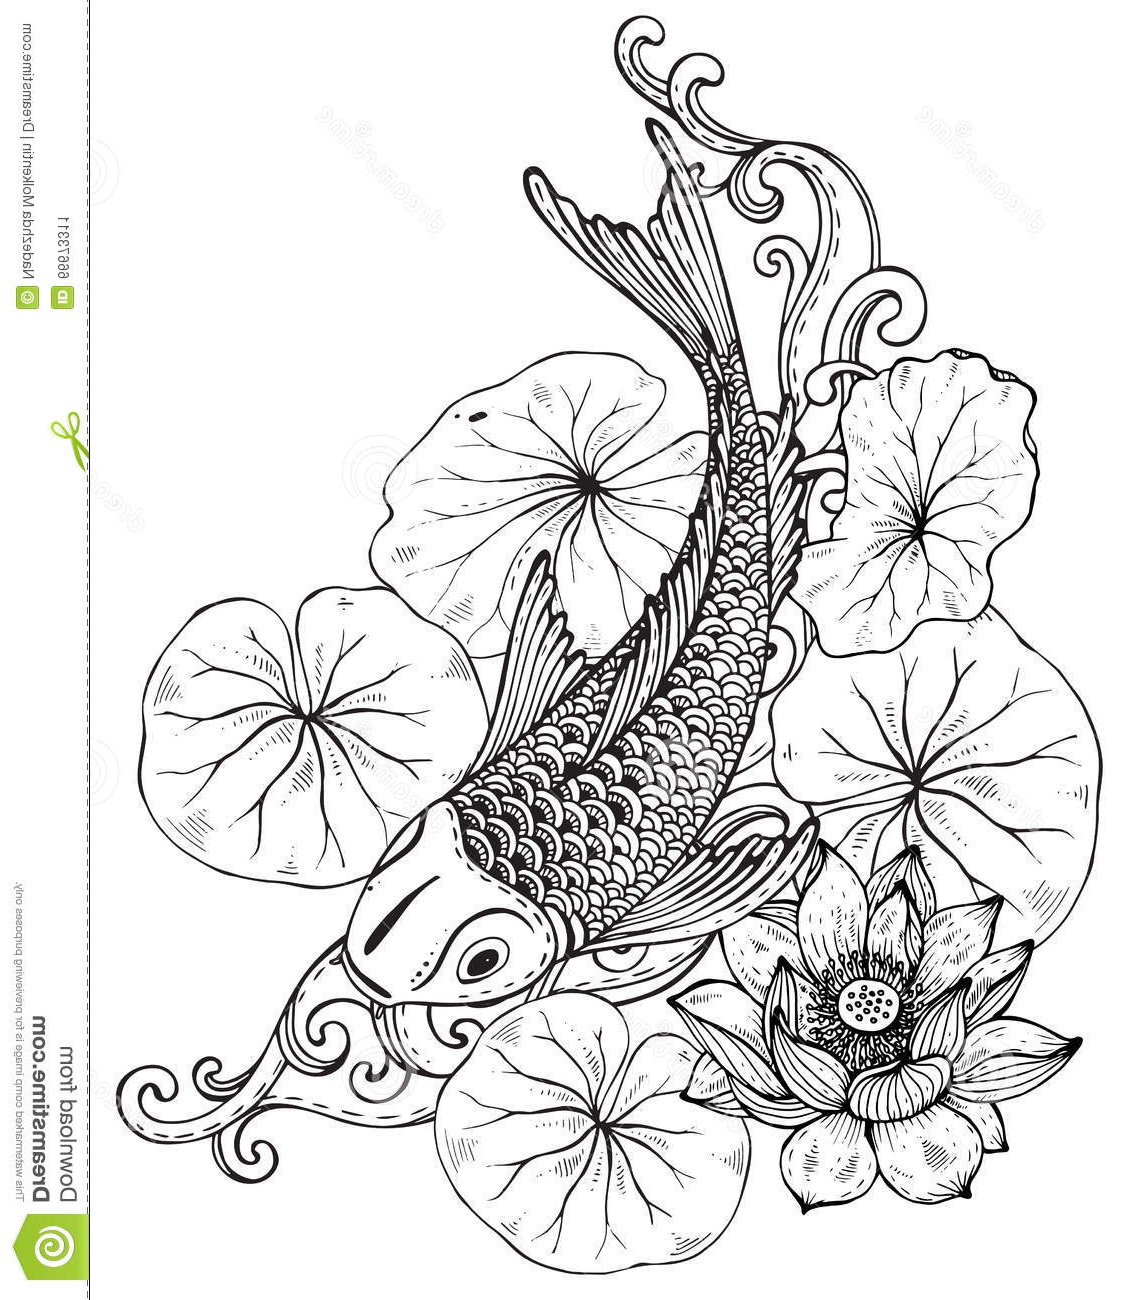 Koi fish drawing step by step at getdrawings free for personal 1130x1300 drawing of lotus flower with leaf how to draw lotus step by step izmirmasajfo